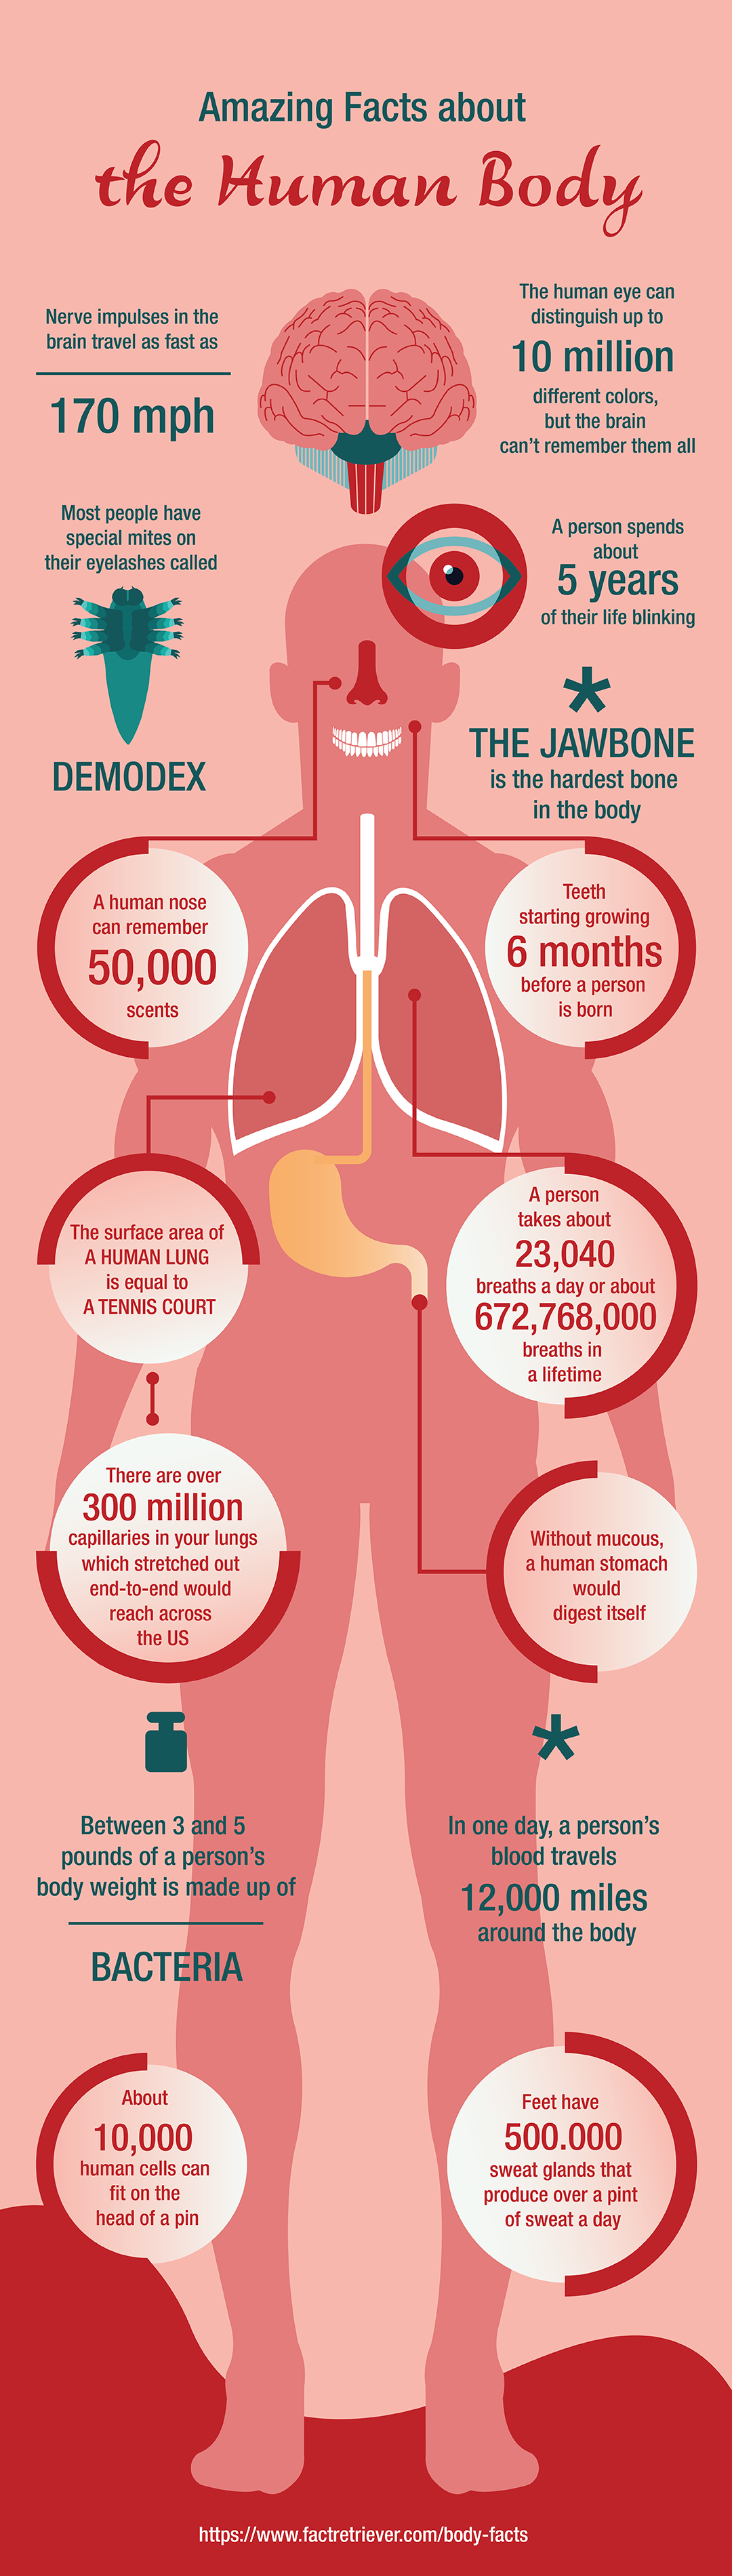 84 Interesting Facts About The Human Body Facts Pinterest